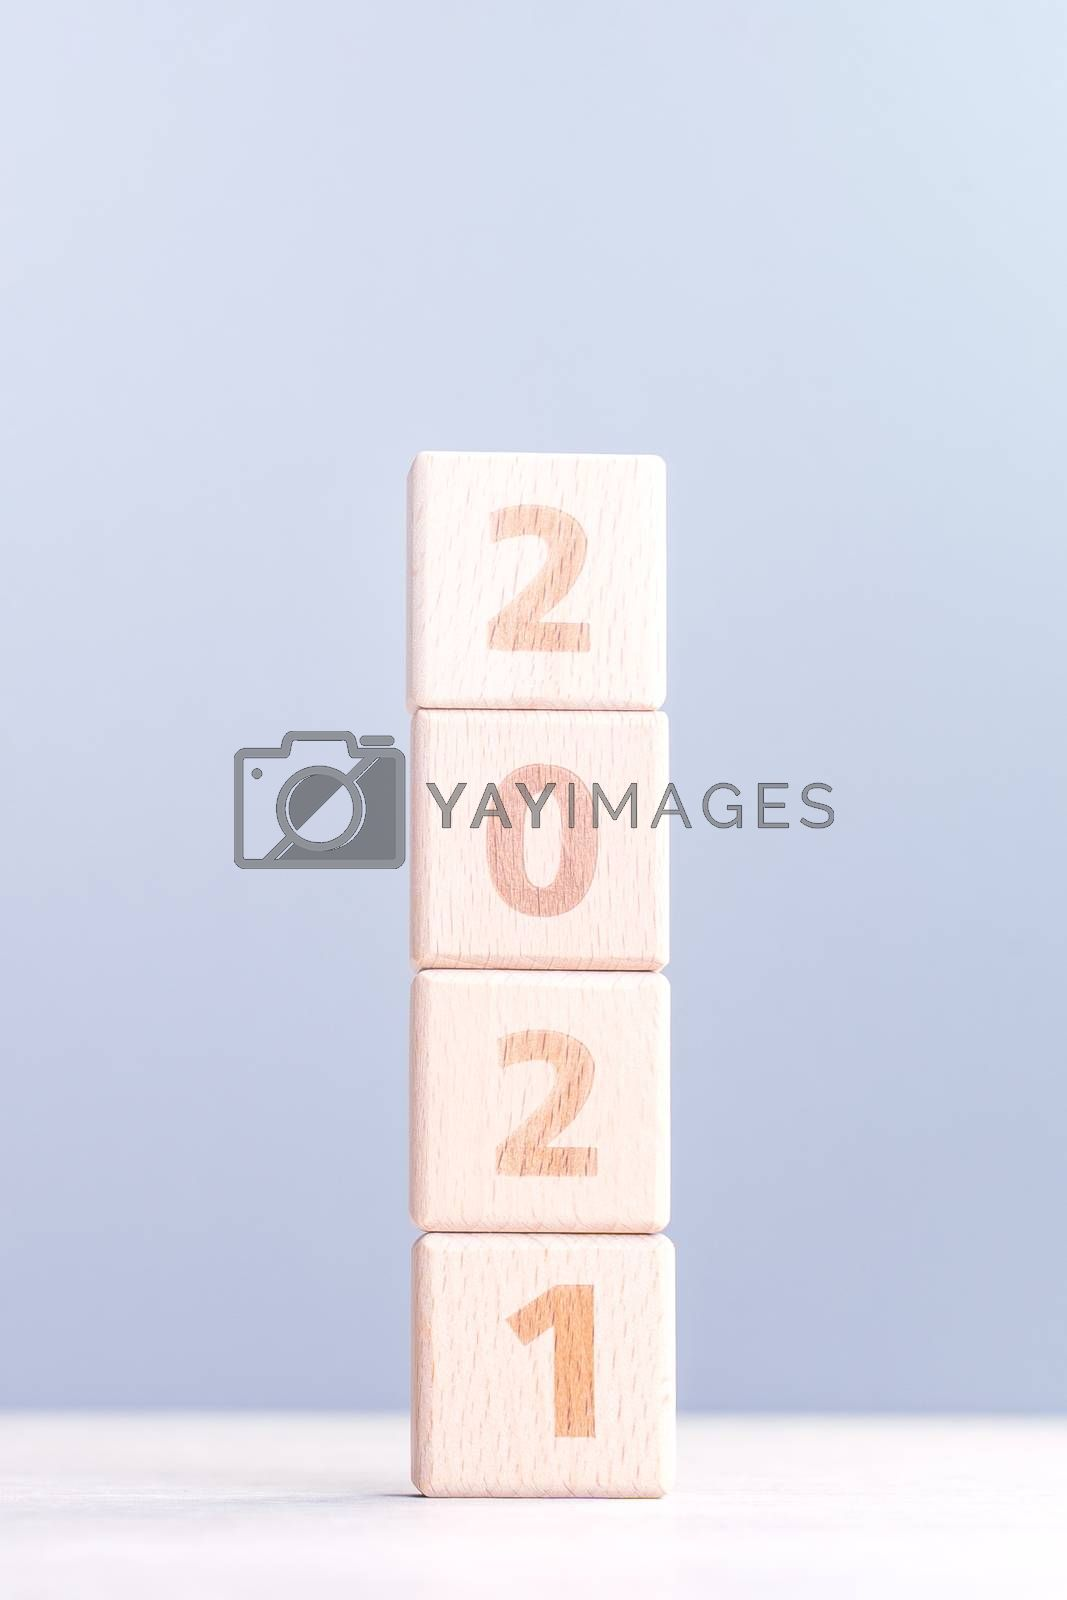 2021 New Year abstract design concept - Number wood block cubes  by ROMIXIMAGE